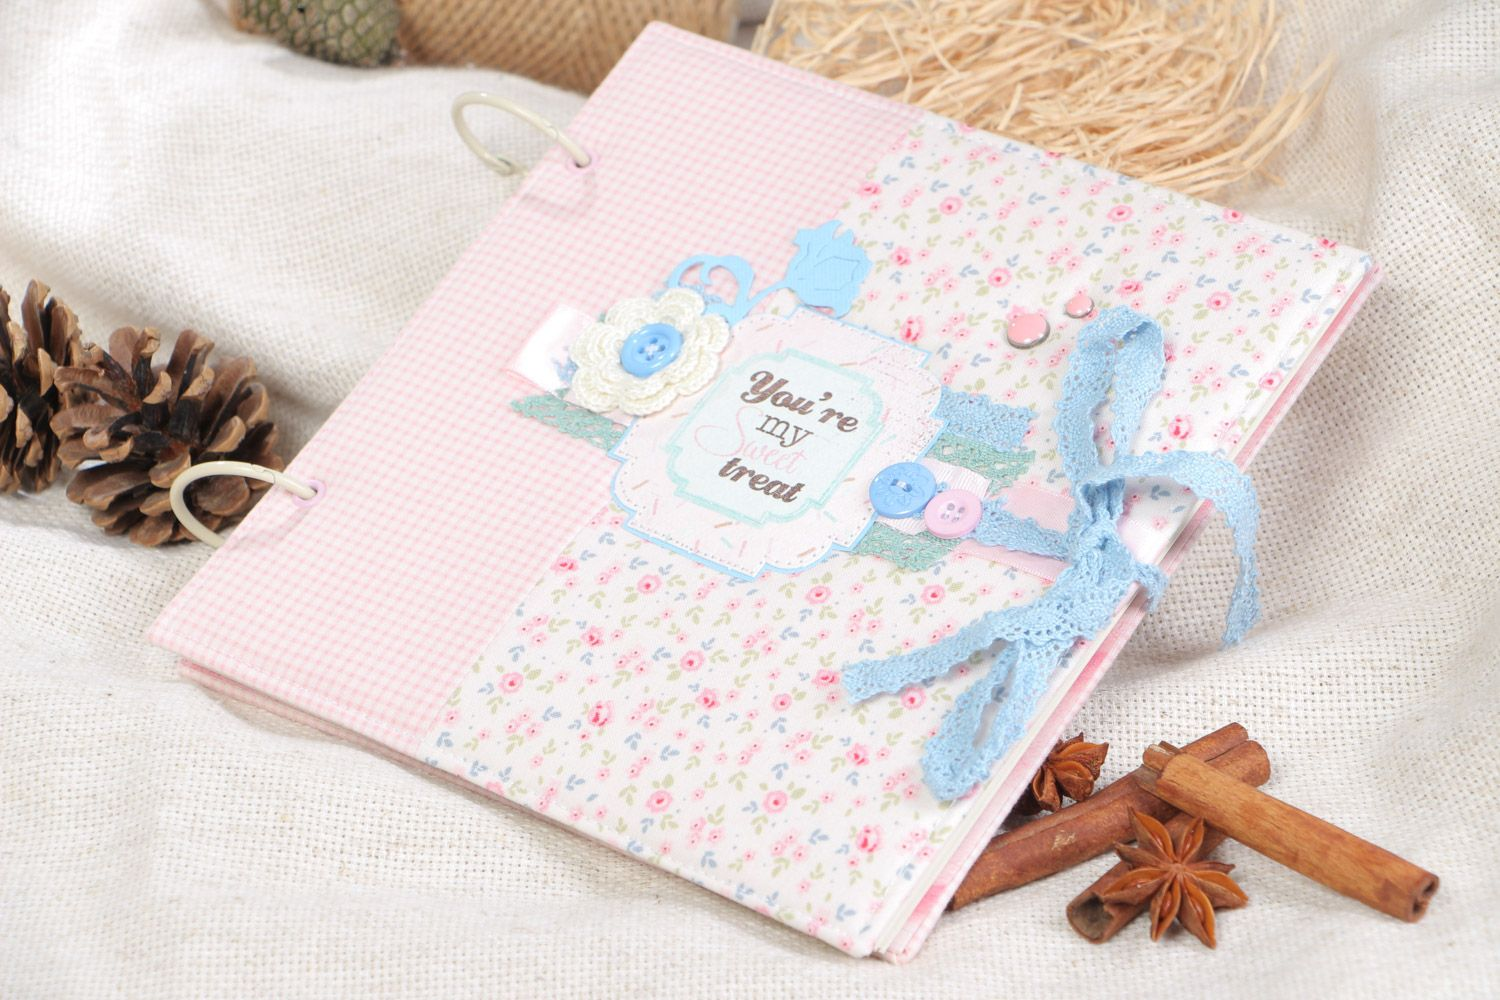 Handmade designer scrapbooking photo album for 25 pages in pink colors photo 1